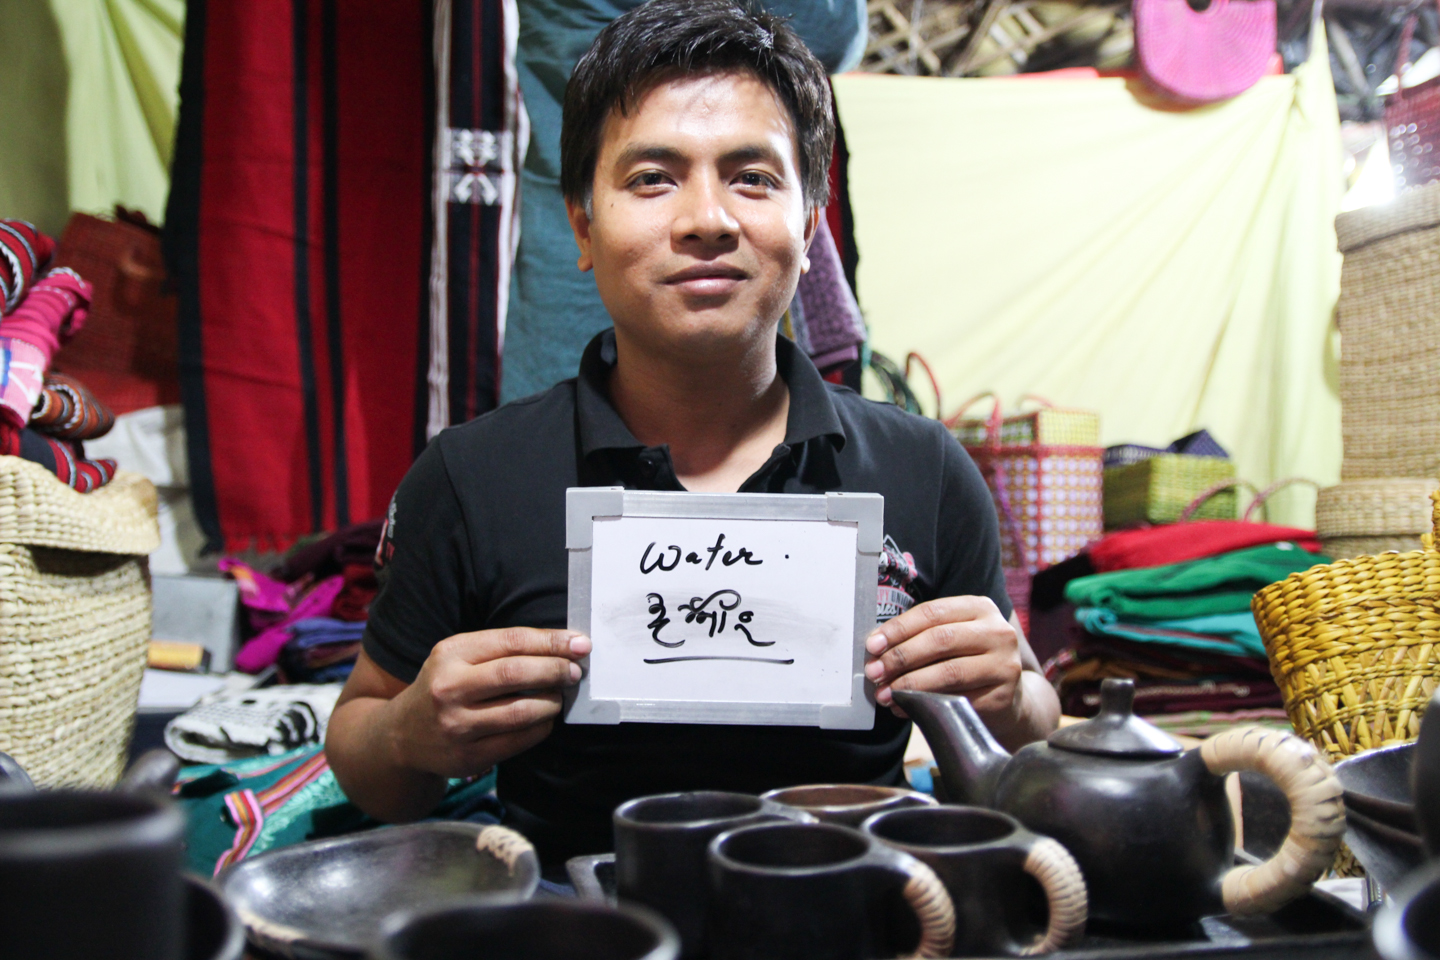 James sells handcrafted tea kettles and cups from his home state of Manipur at Dilli Haat in Delhi. The vessels are made from serpentinite rock, which is fireproof and supposedly imparts health benefits into the brew inside the pot.